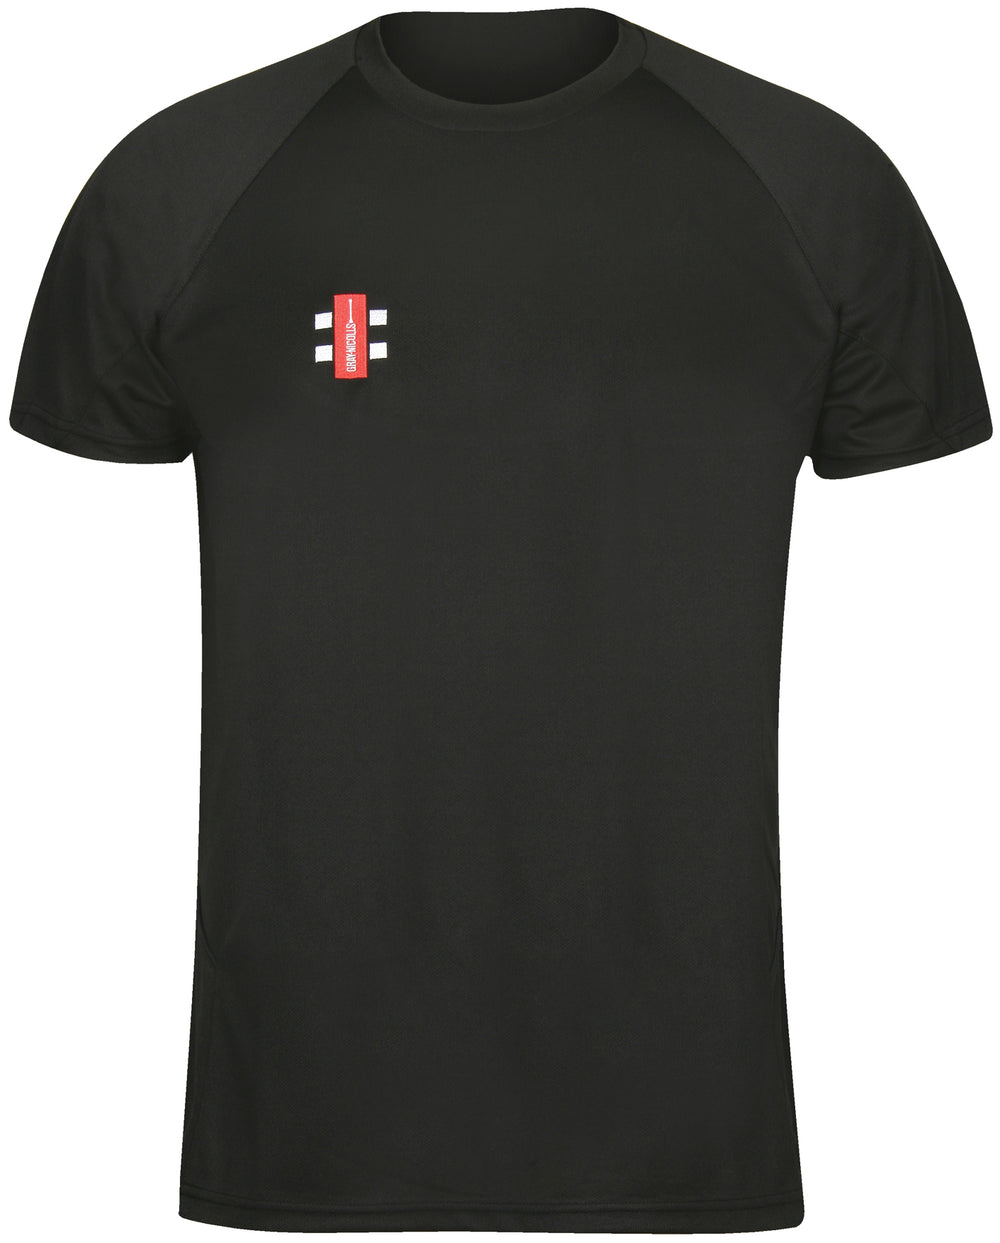 Hillesley CC Black Matrix Tee Shirt